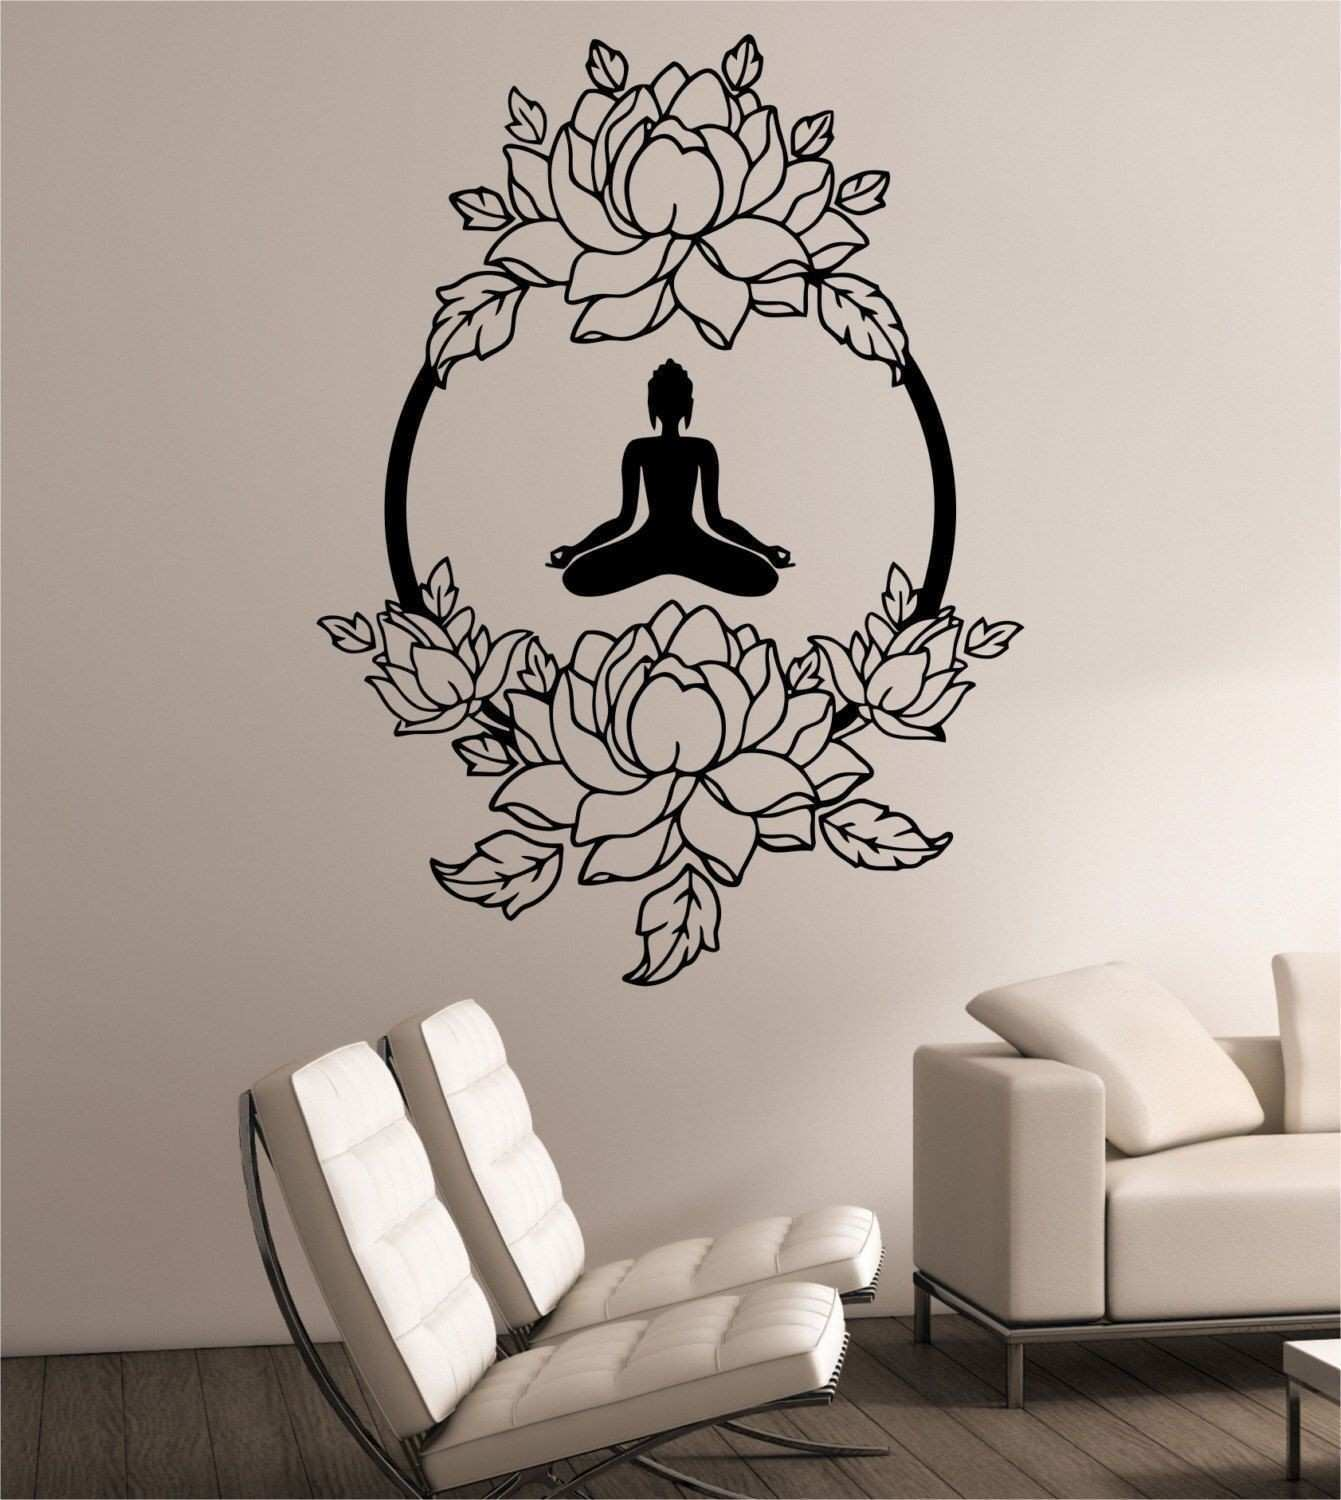 Wall Decal Luxury 1 Kirkland Wall Decor Home Design 0d Outdoor